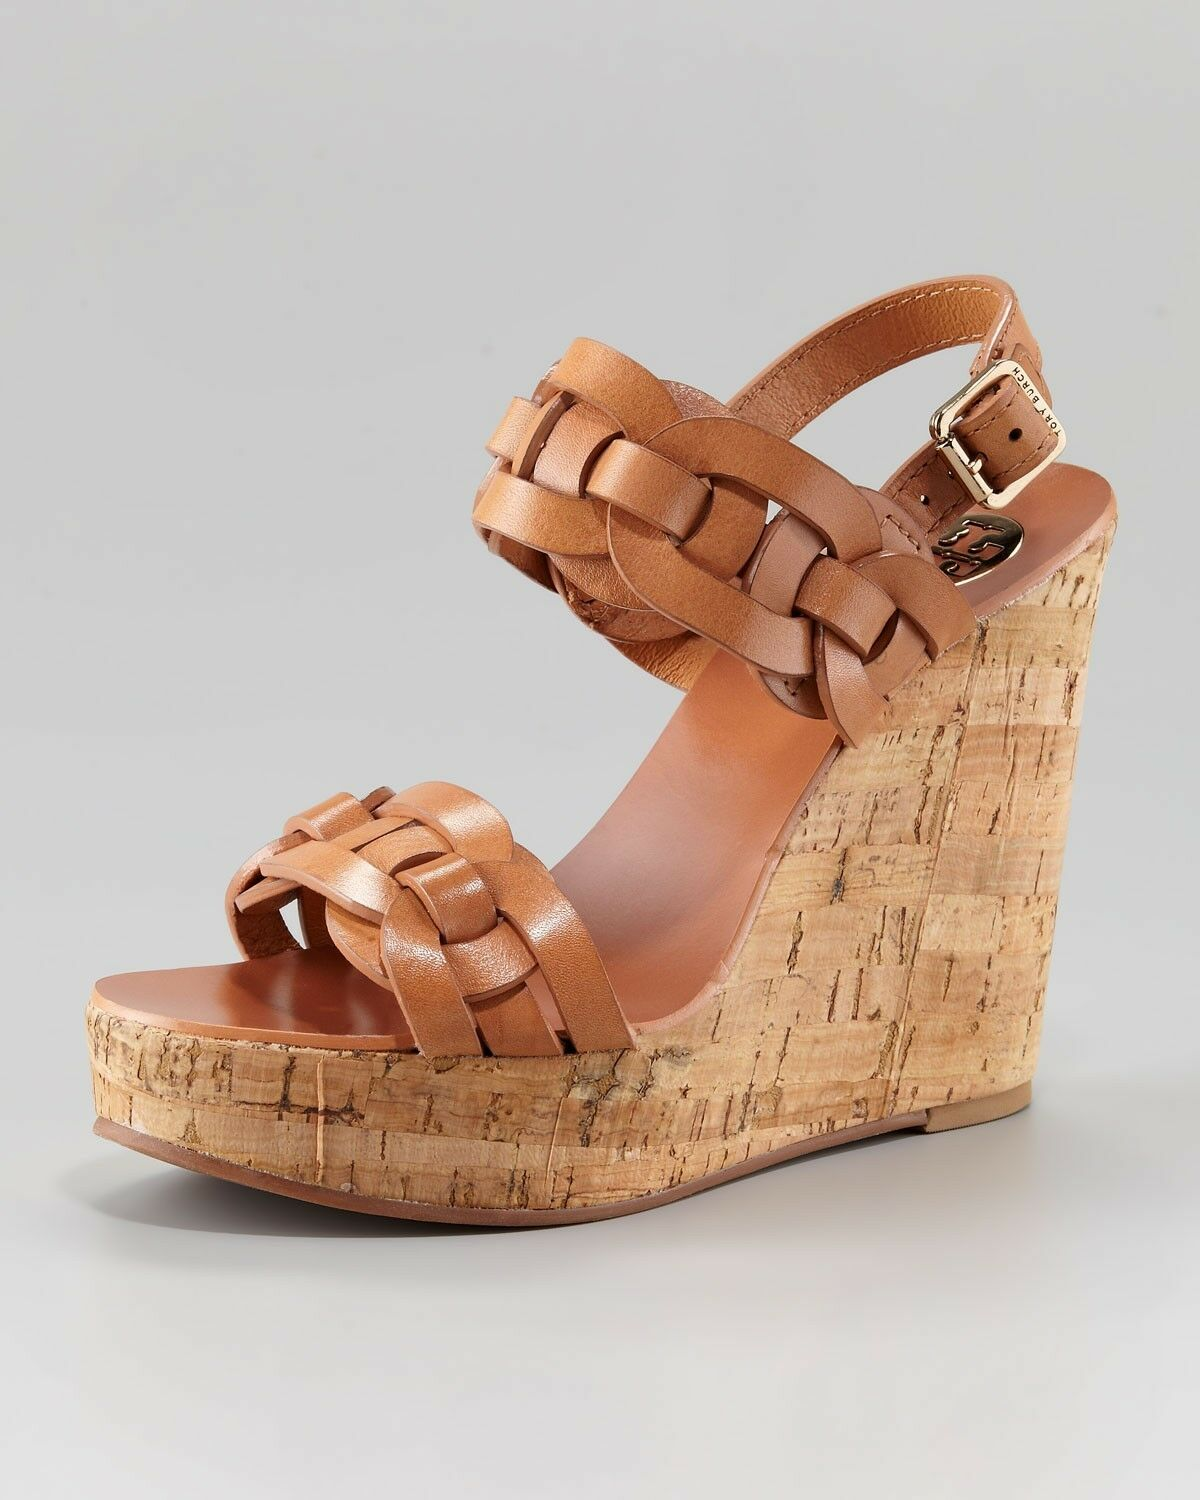 TORY BURCH CALYCA BRAIDED LEATHER GOLD LOGO BUCKLE CORK WEDGES I LOVE SHOES